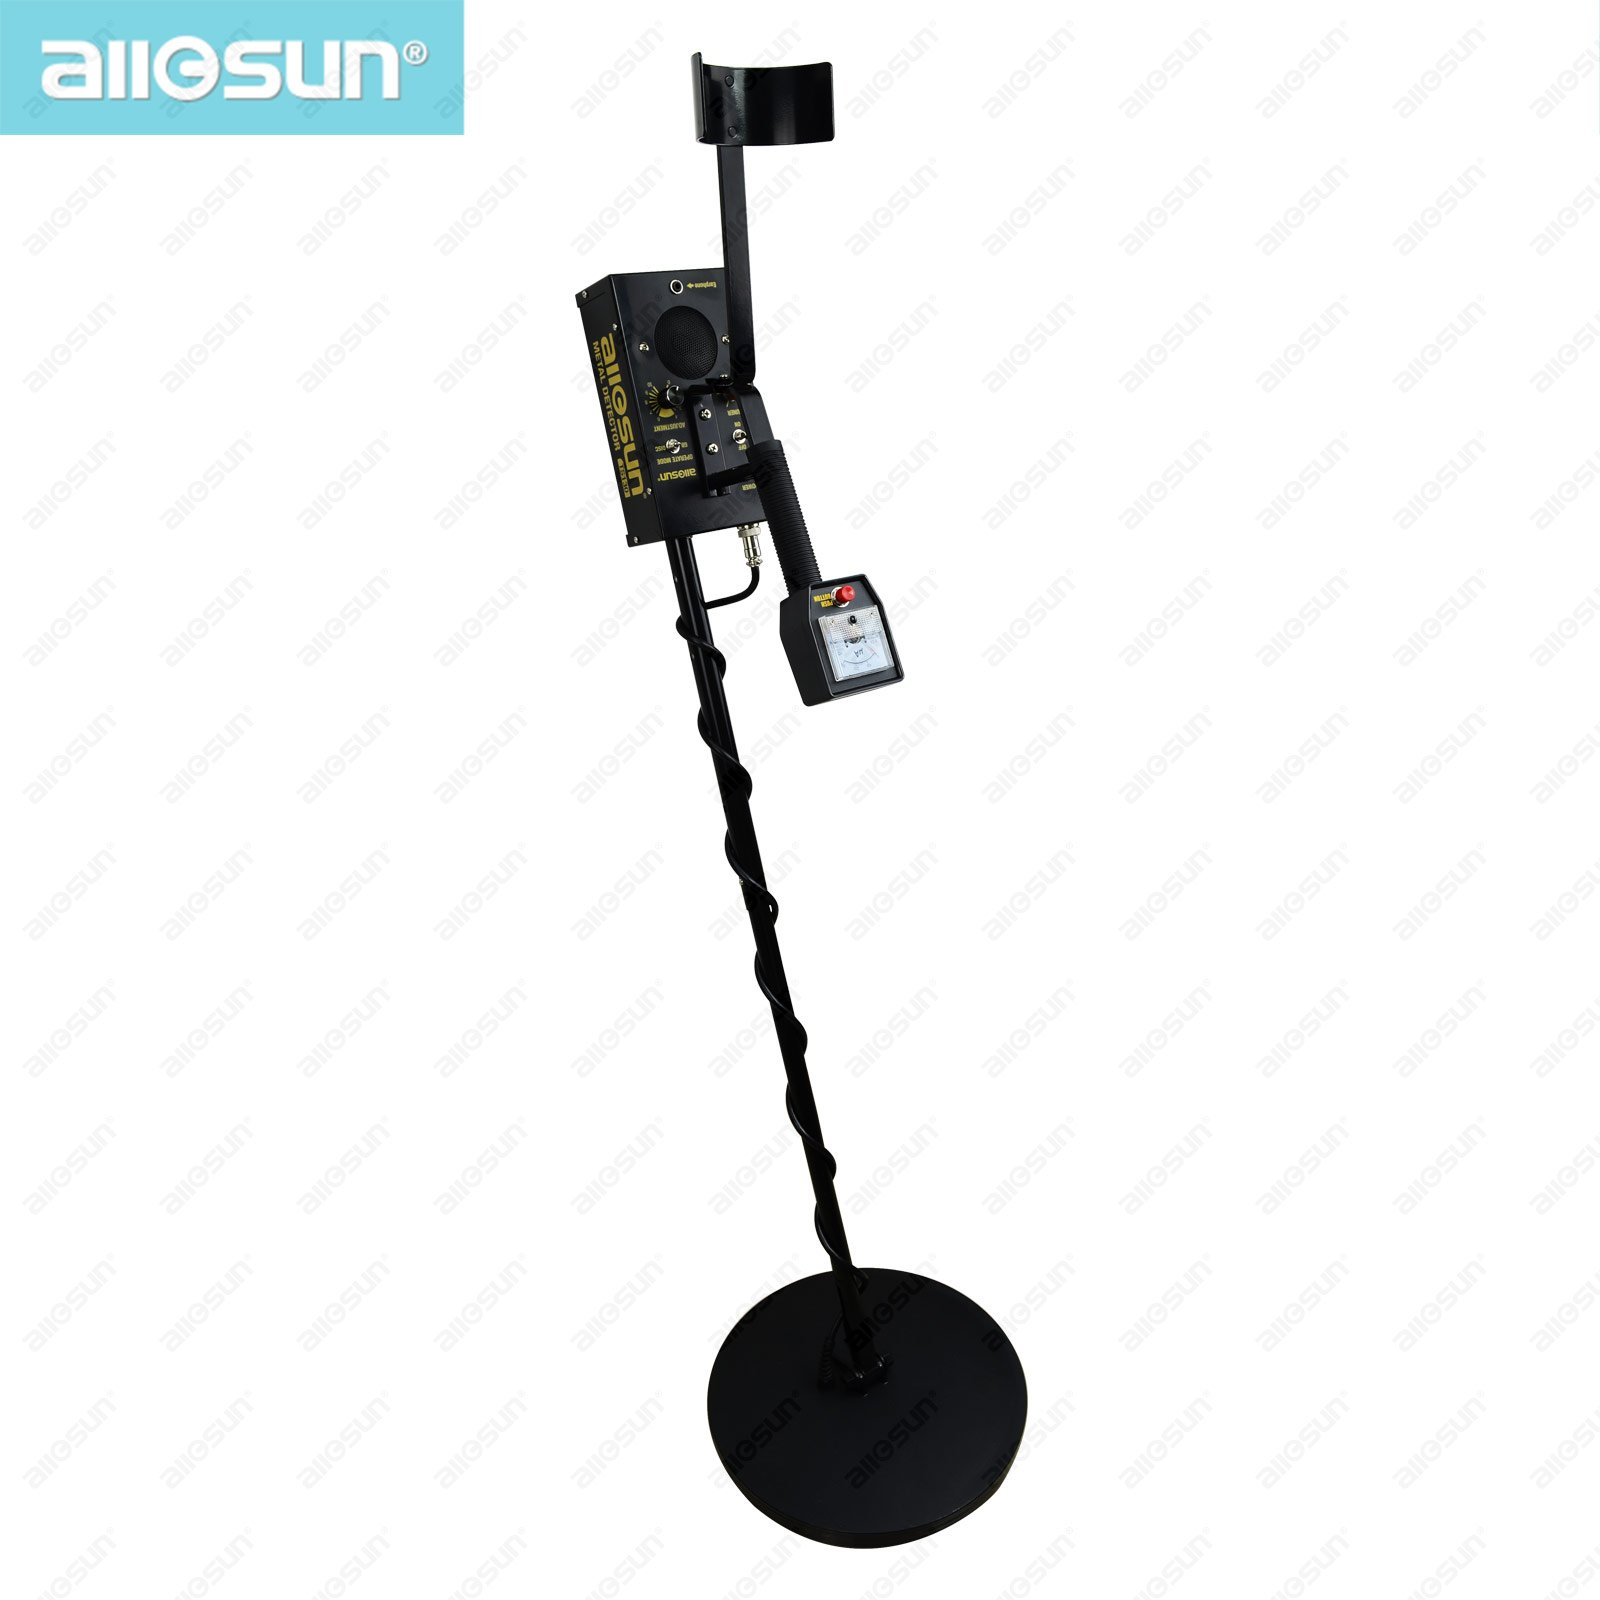 ALL SUN TS130 Metal Detector Underground with iron box Gold Metal Detector Treasure HunterALL SUN TS130 Metal Detector Underground with iron box Gold Metal Detector Treasure Hunter